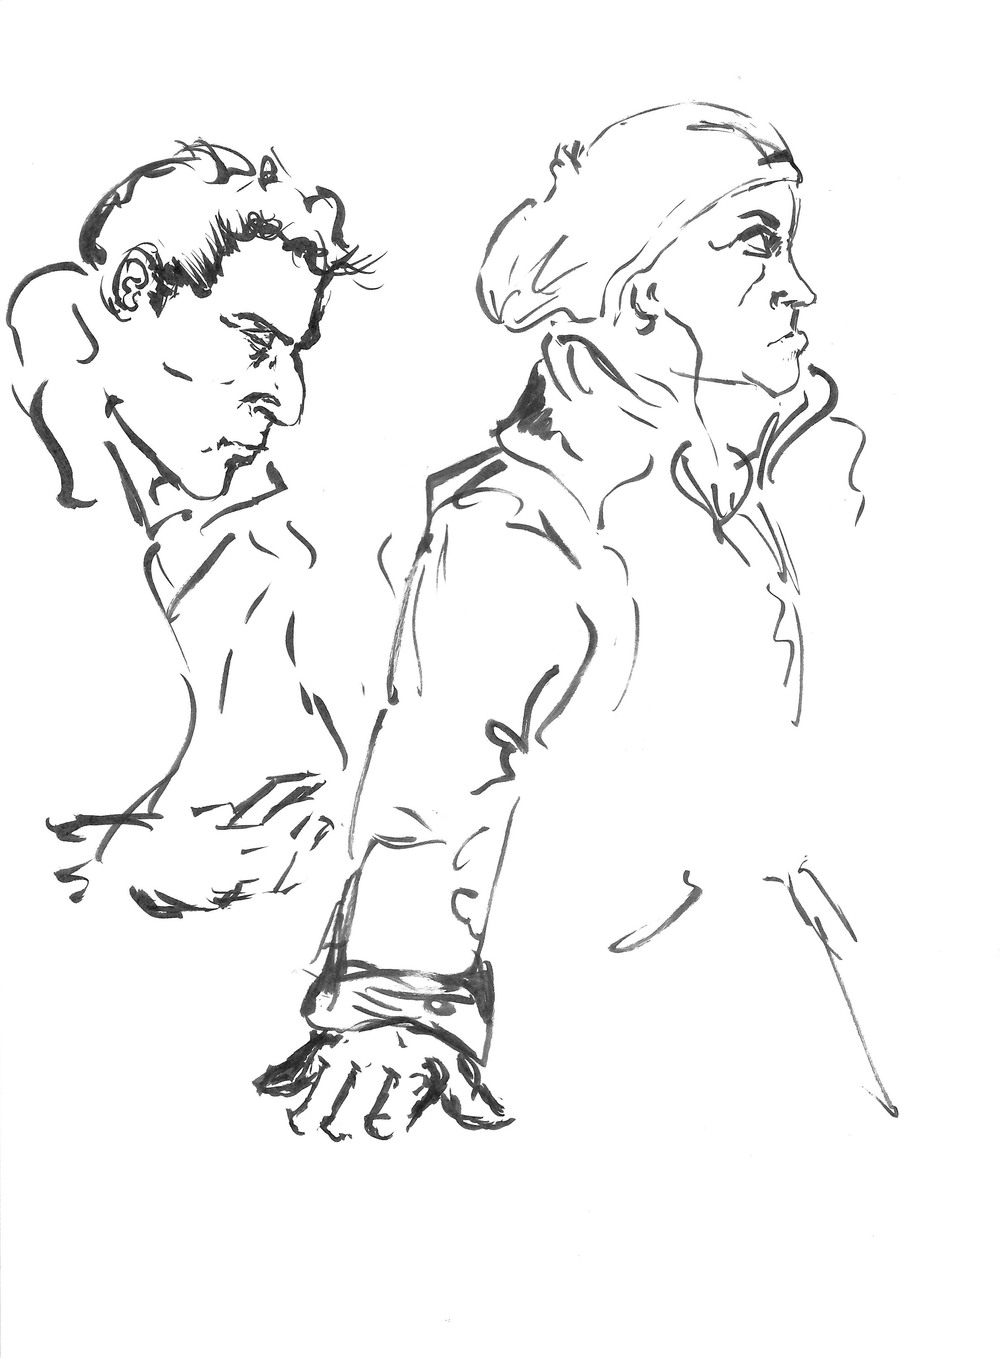 Subway Drawings 9.jpg